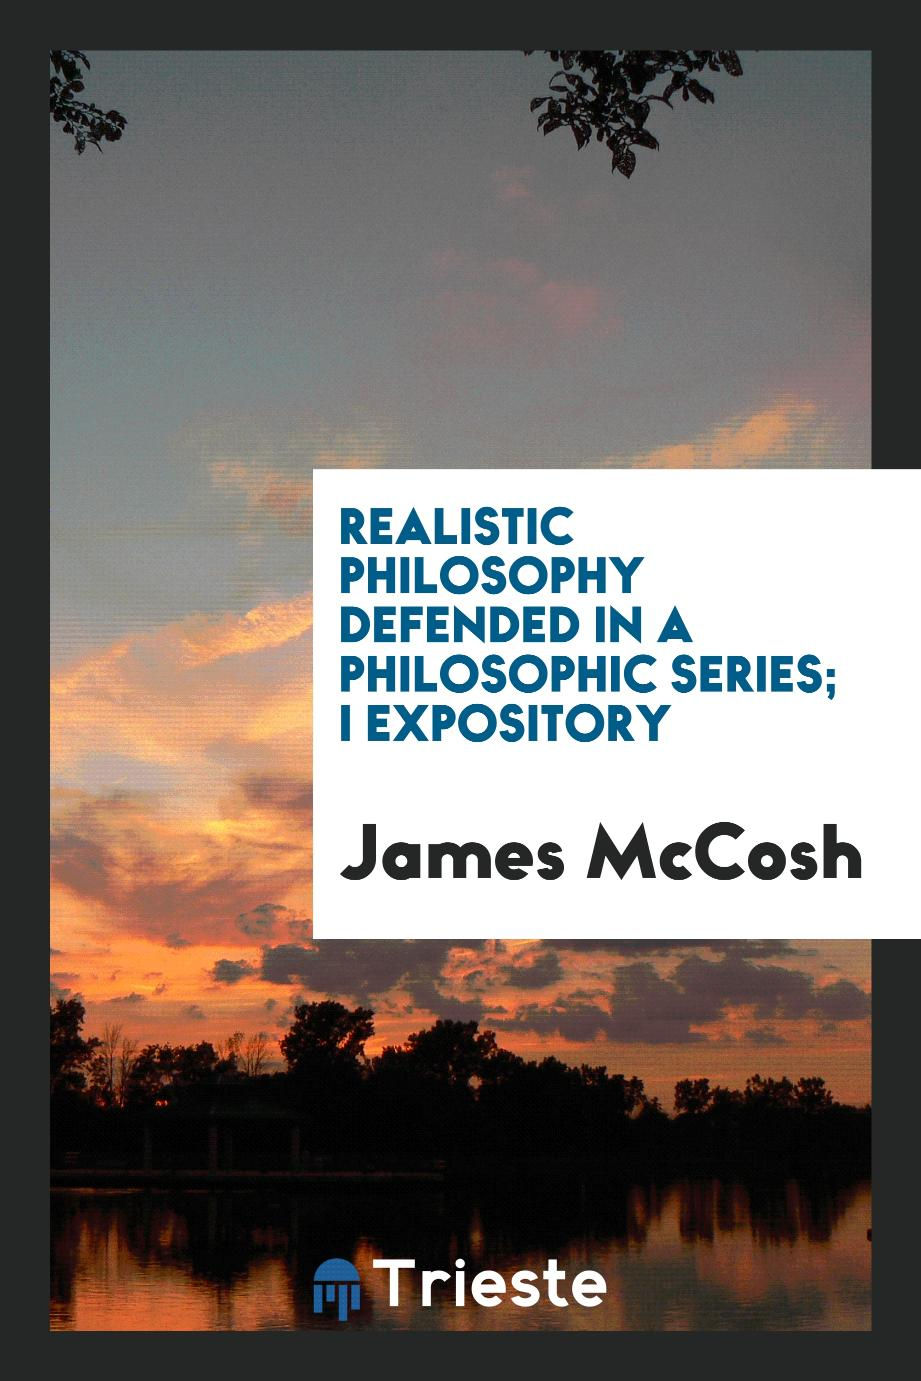 Realistic philosophy defended in a philosophic series; I Expository